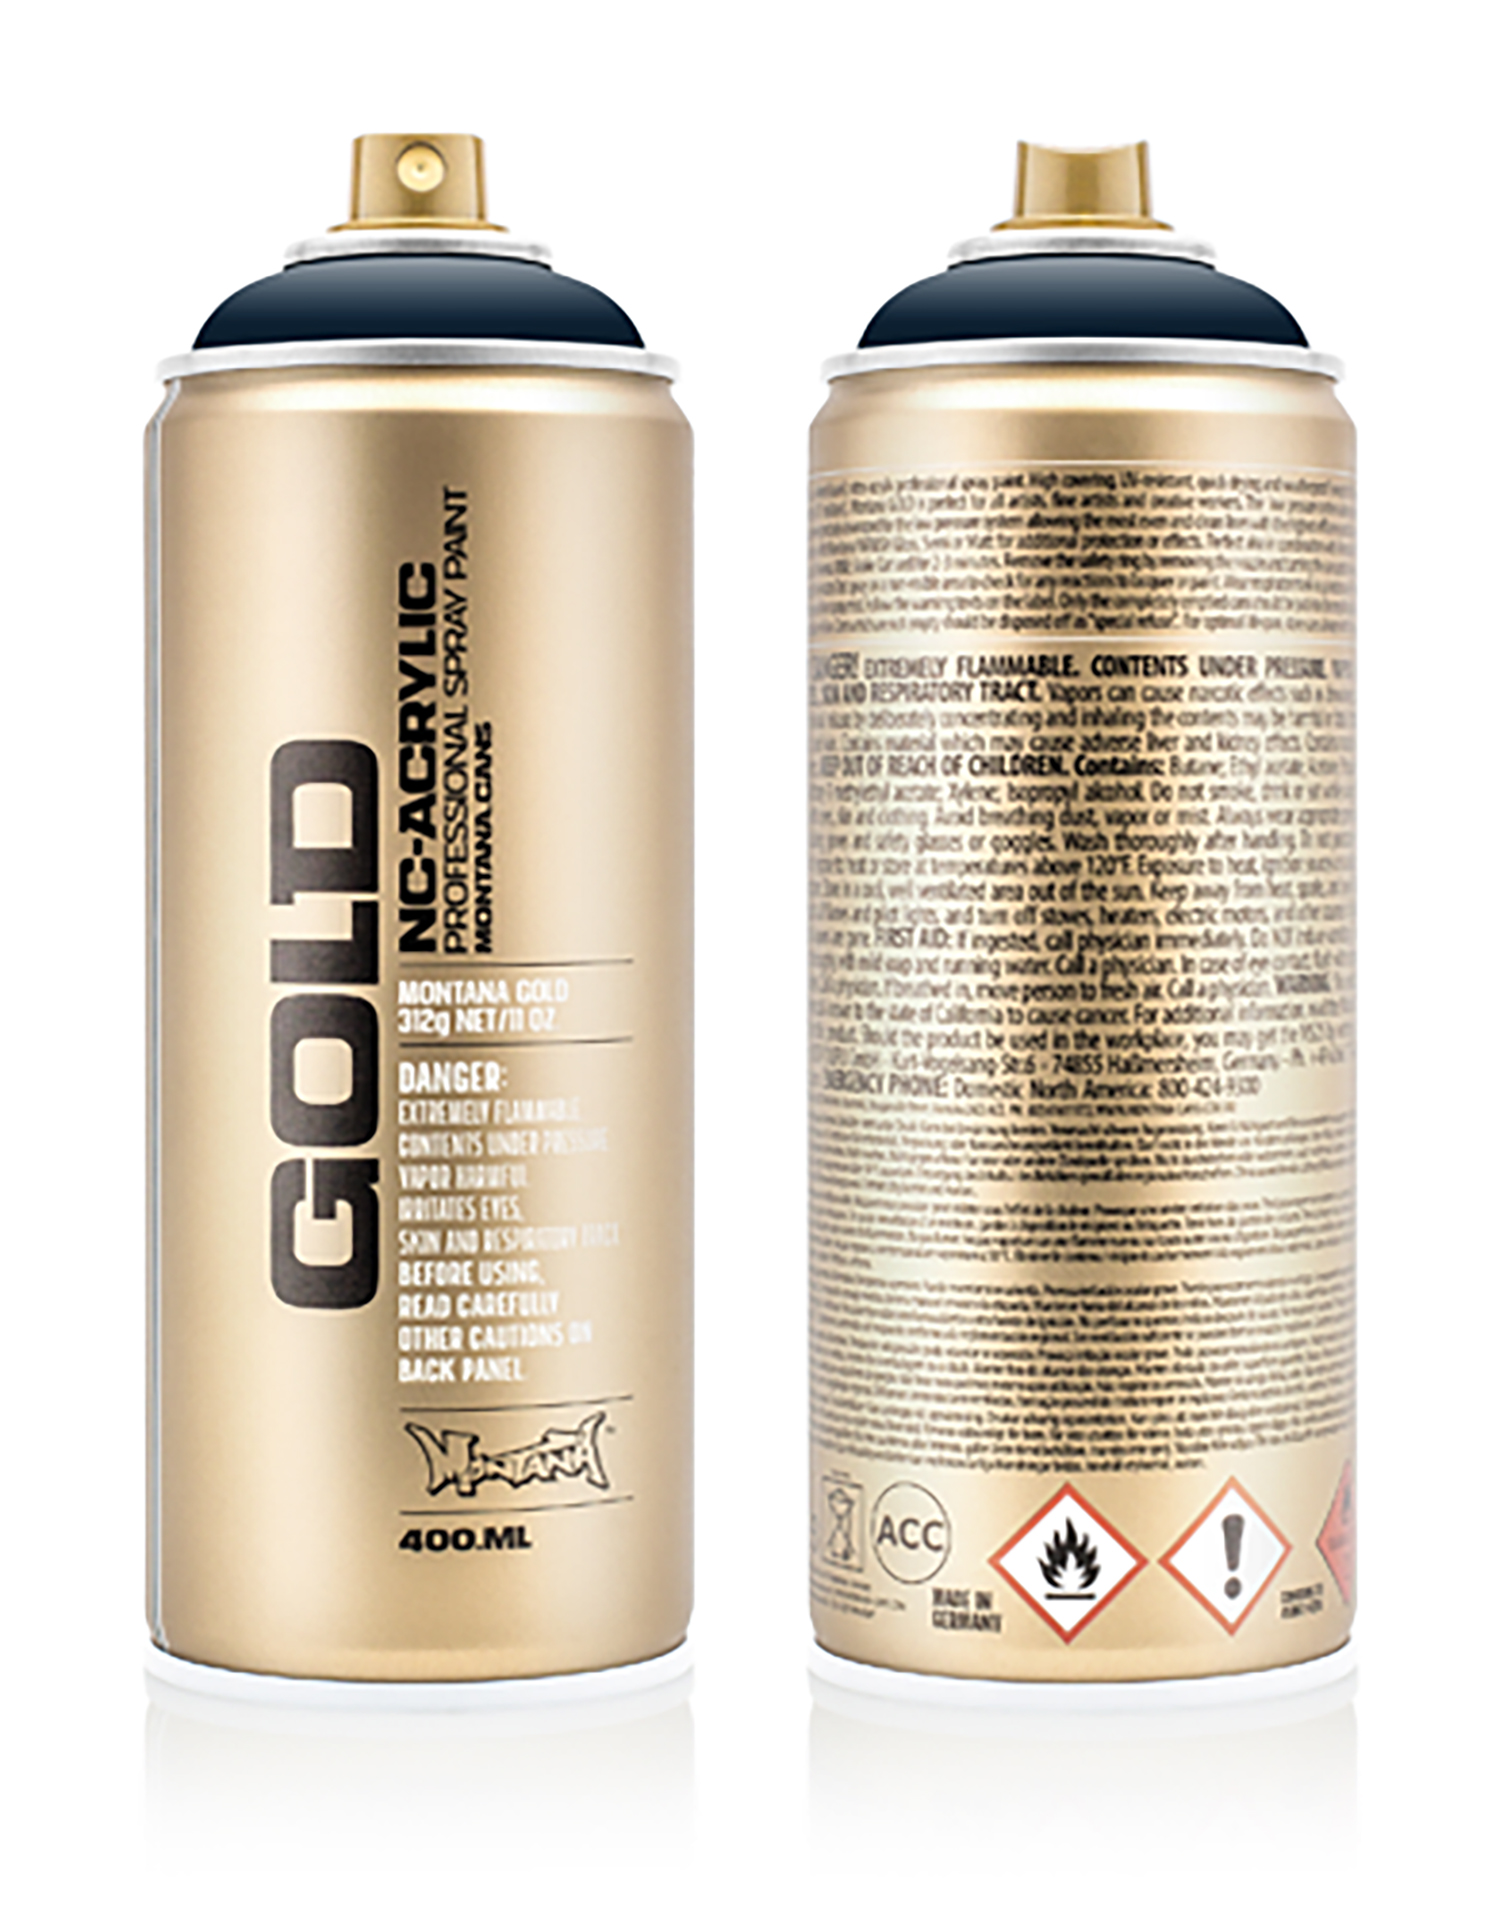 MONTANA-GOLD-SPRAY-400ML-G-5090